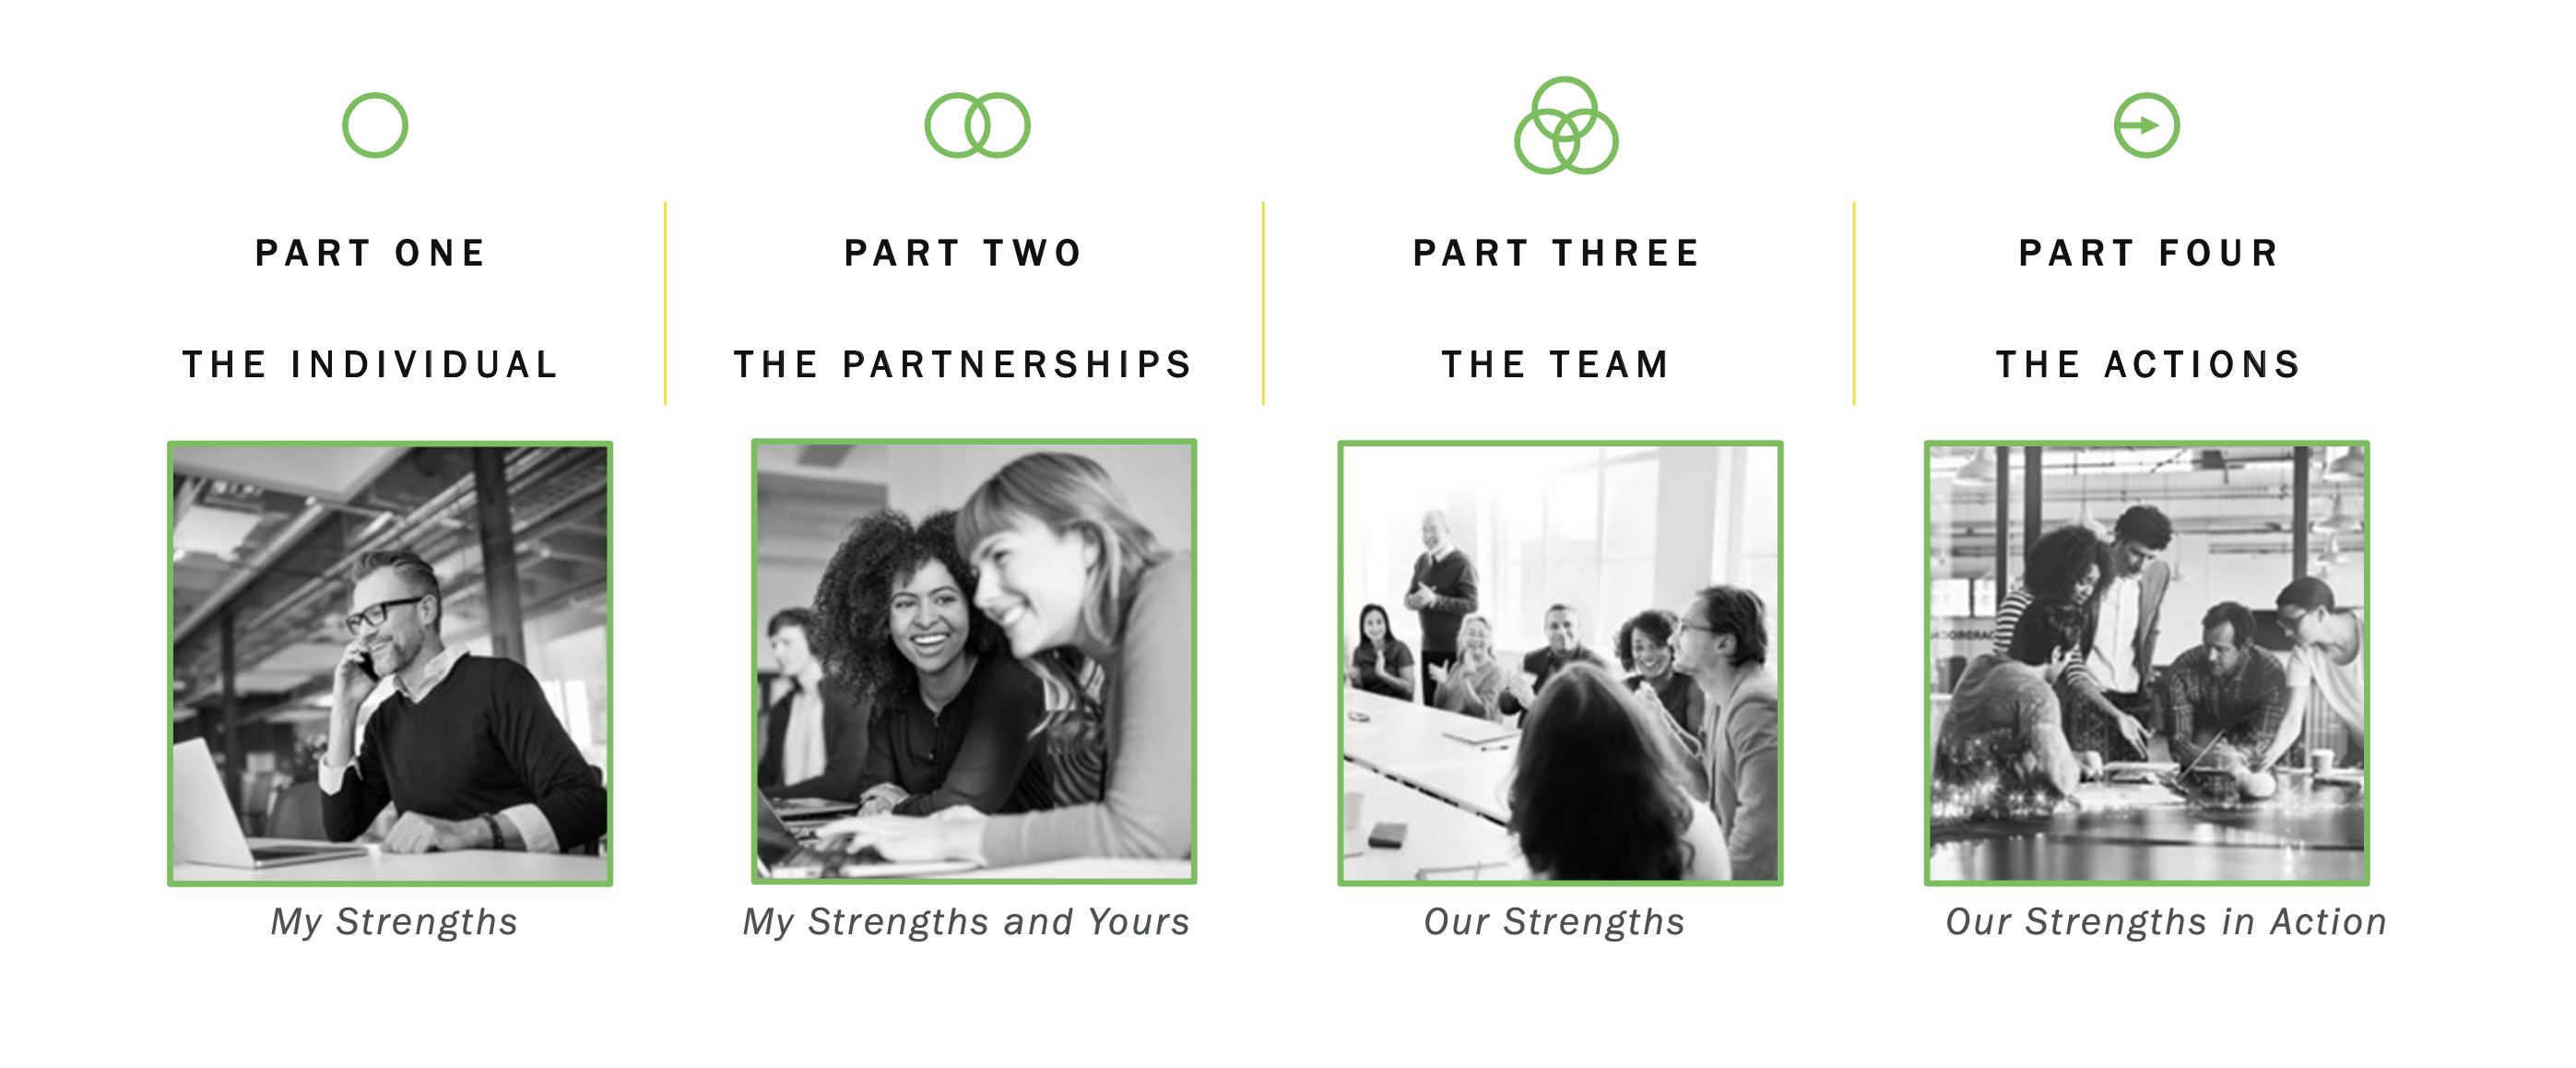 Gallup Global Strengths